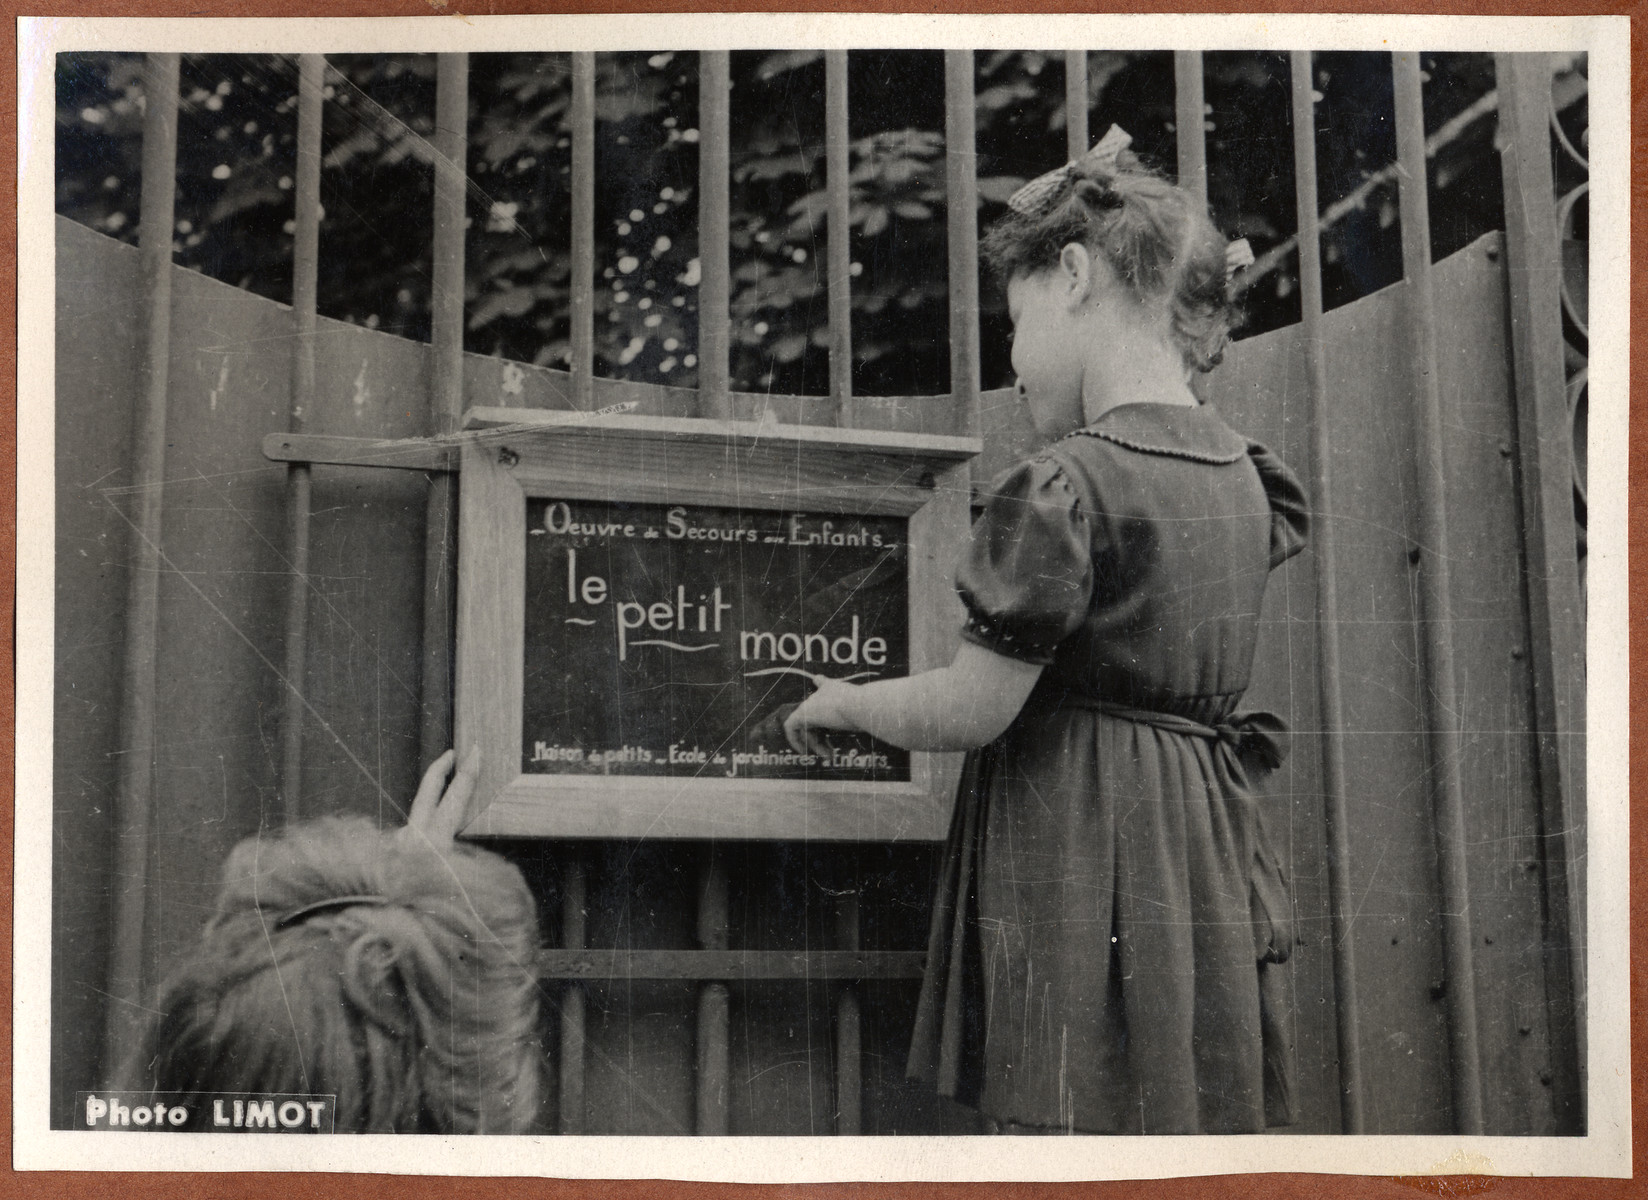 A young girl reads a sign outside the OSE children's home, Le Petit Monde.